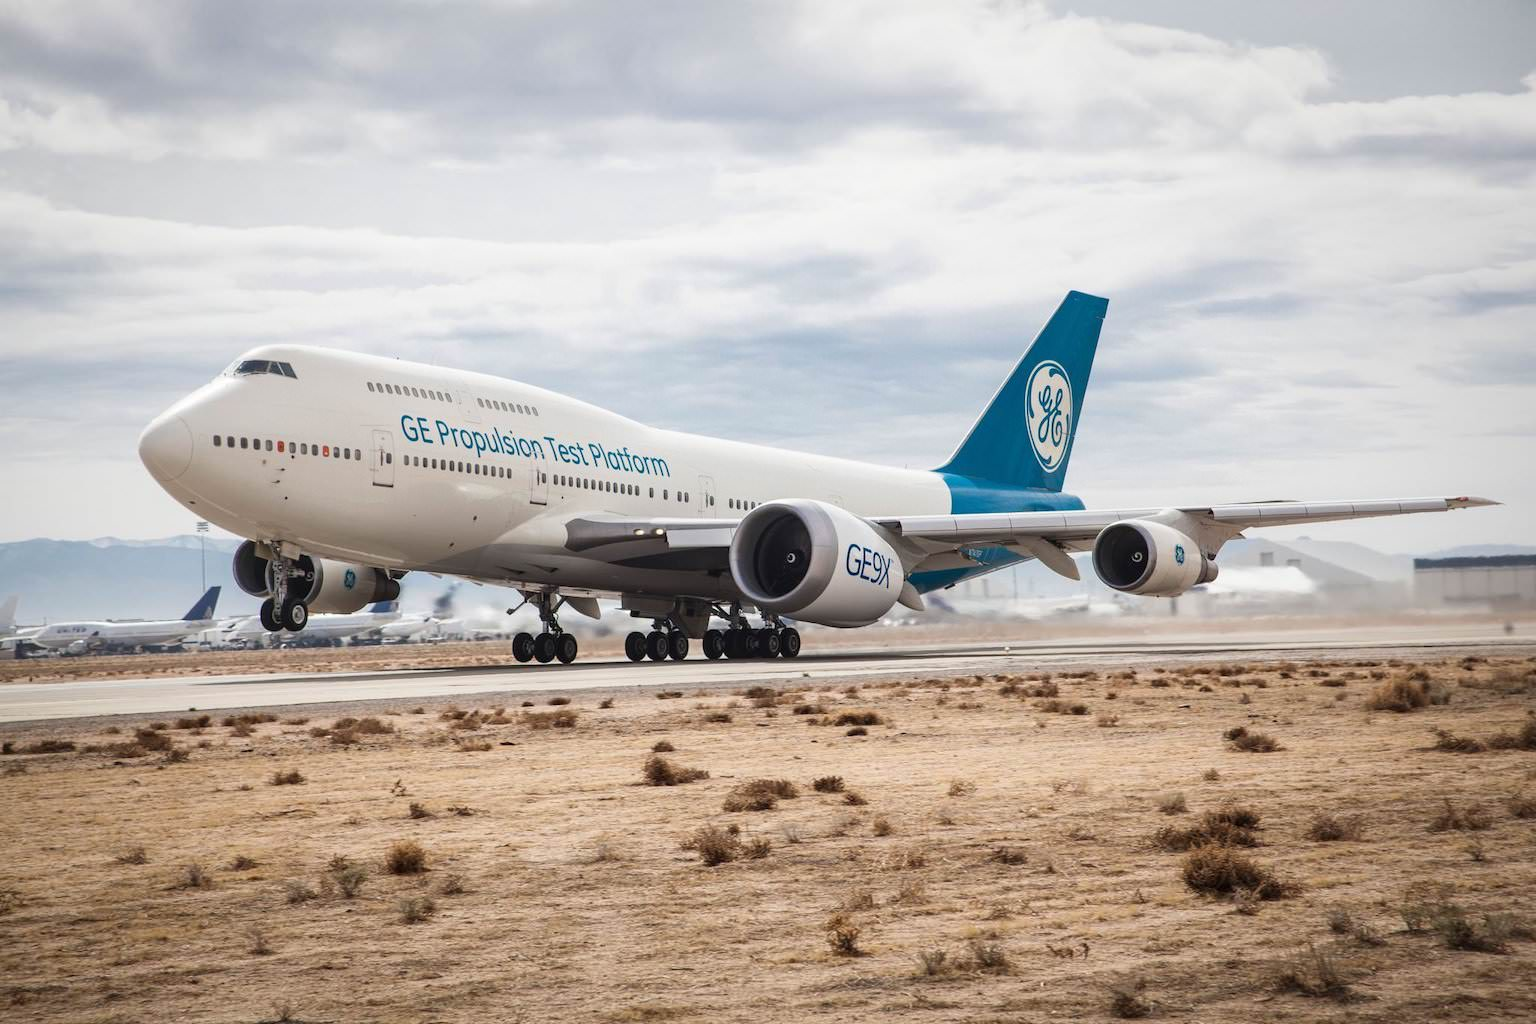 GE9X on GE 747 test bed